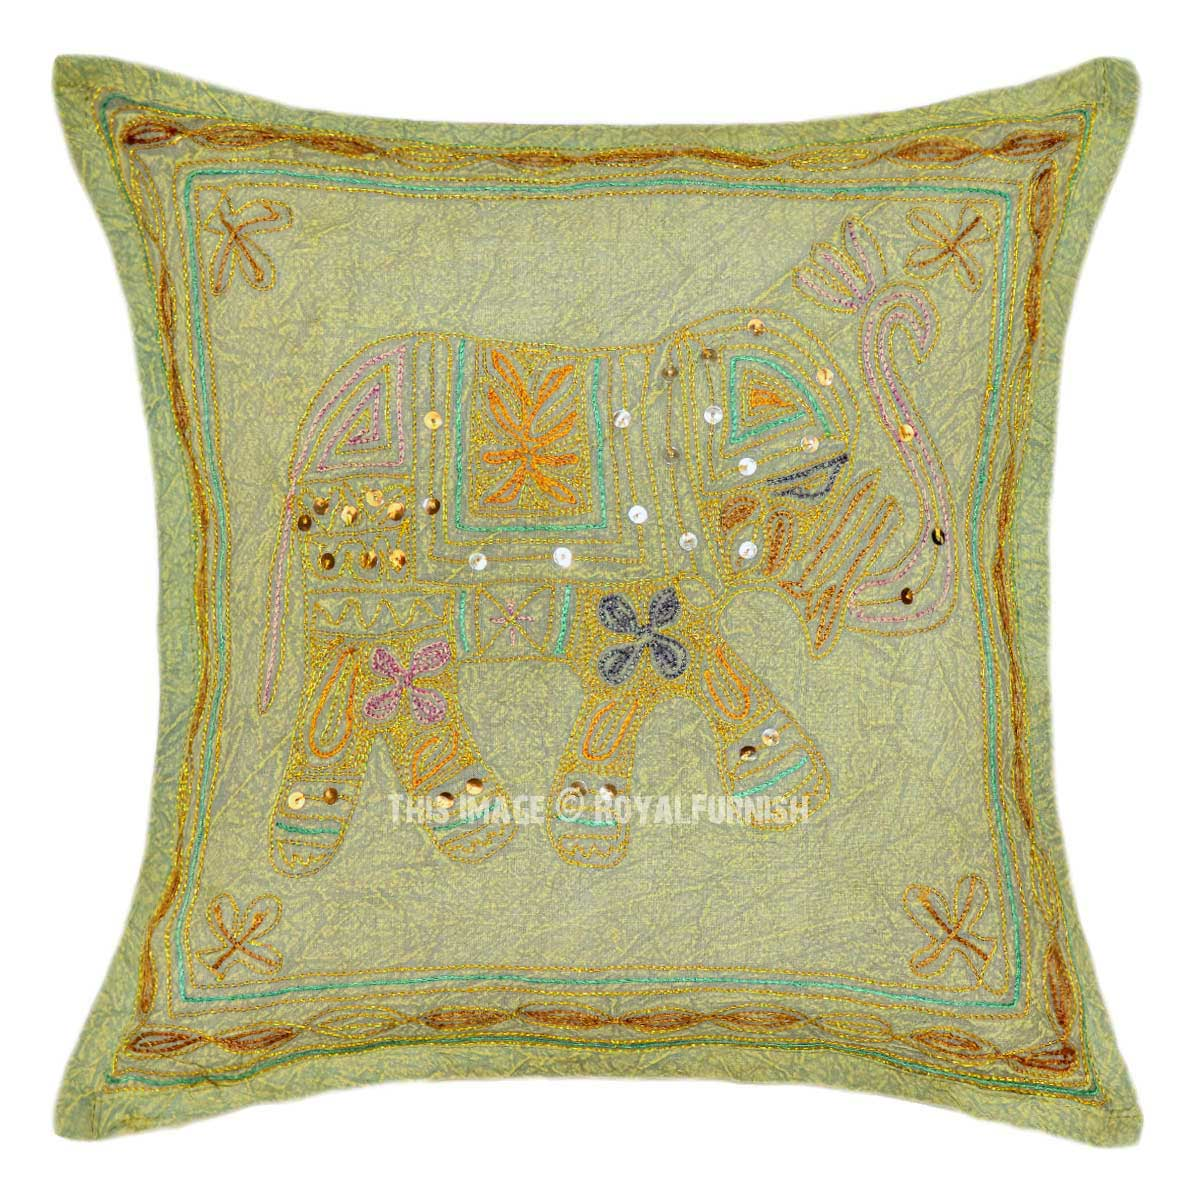 Embroidered Throw Pillow Covers : Brown Elephant Embroidered 16X16 Cotton Throw Pillow Cover - RoyalFurnish.com